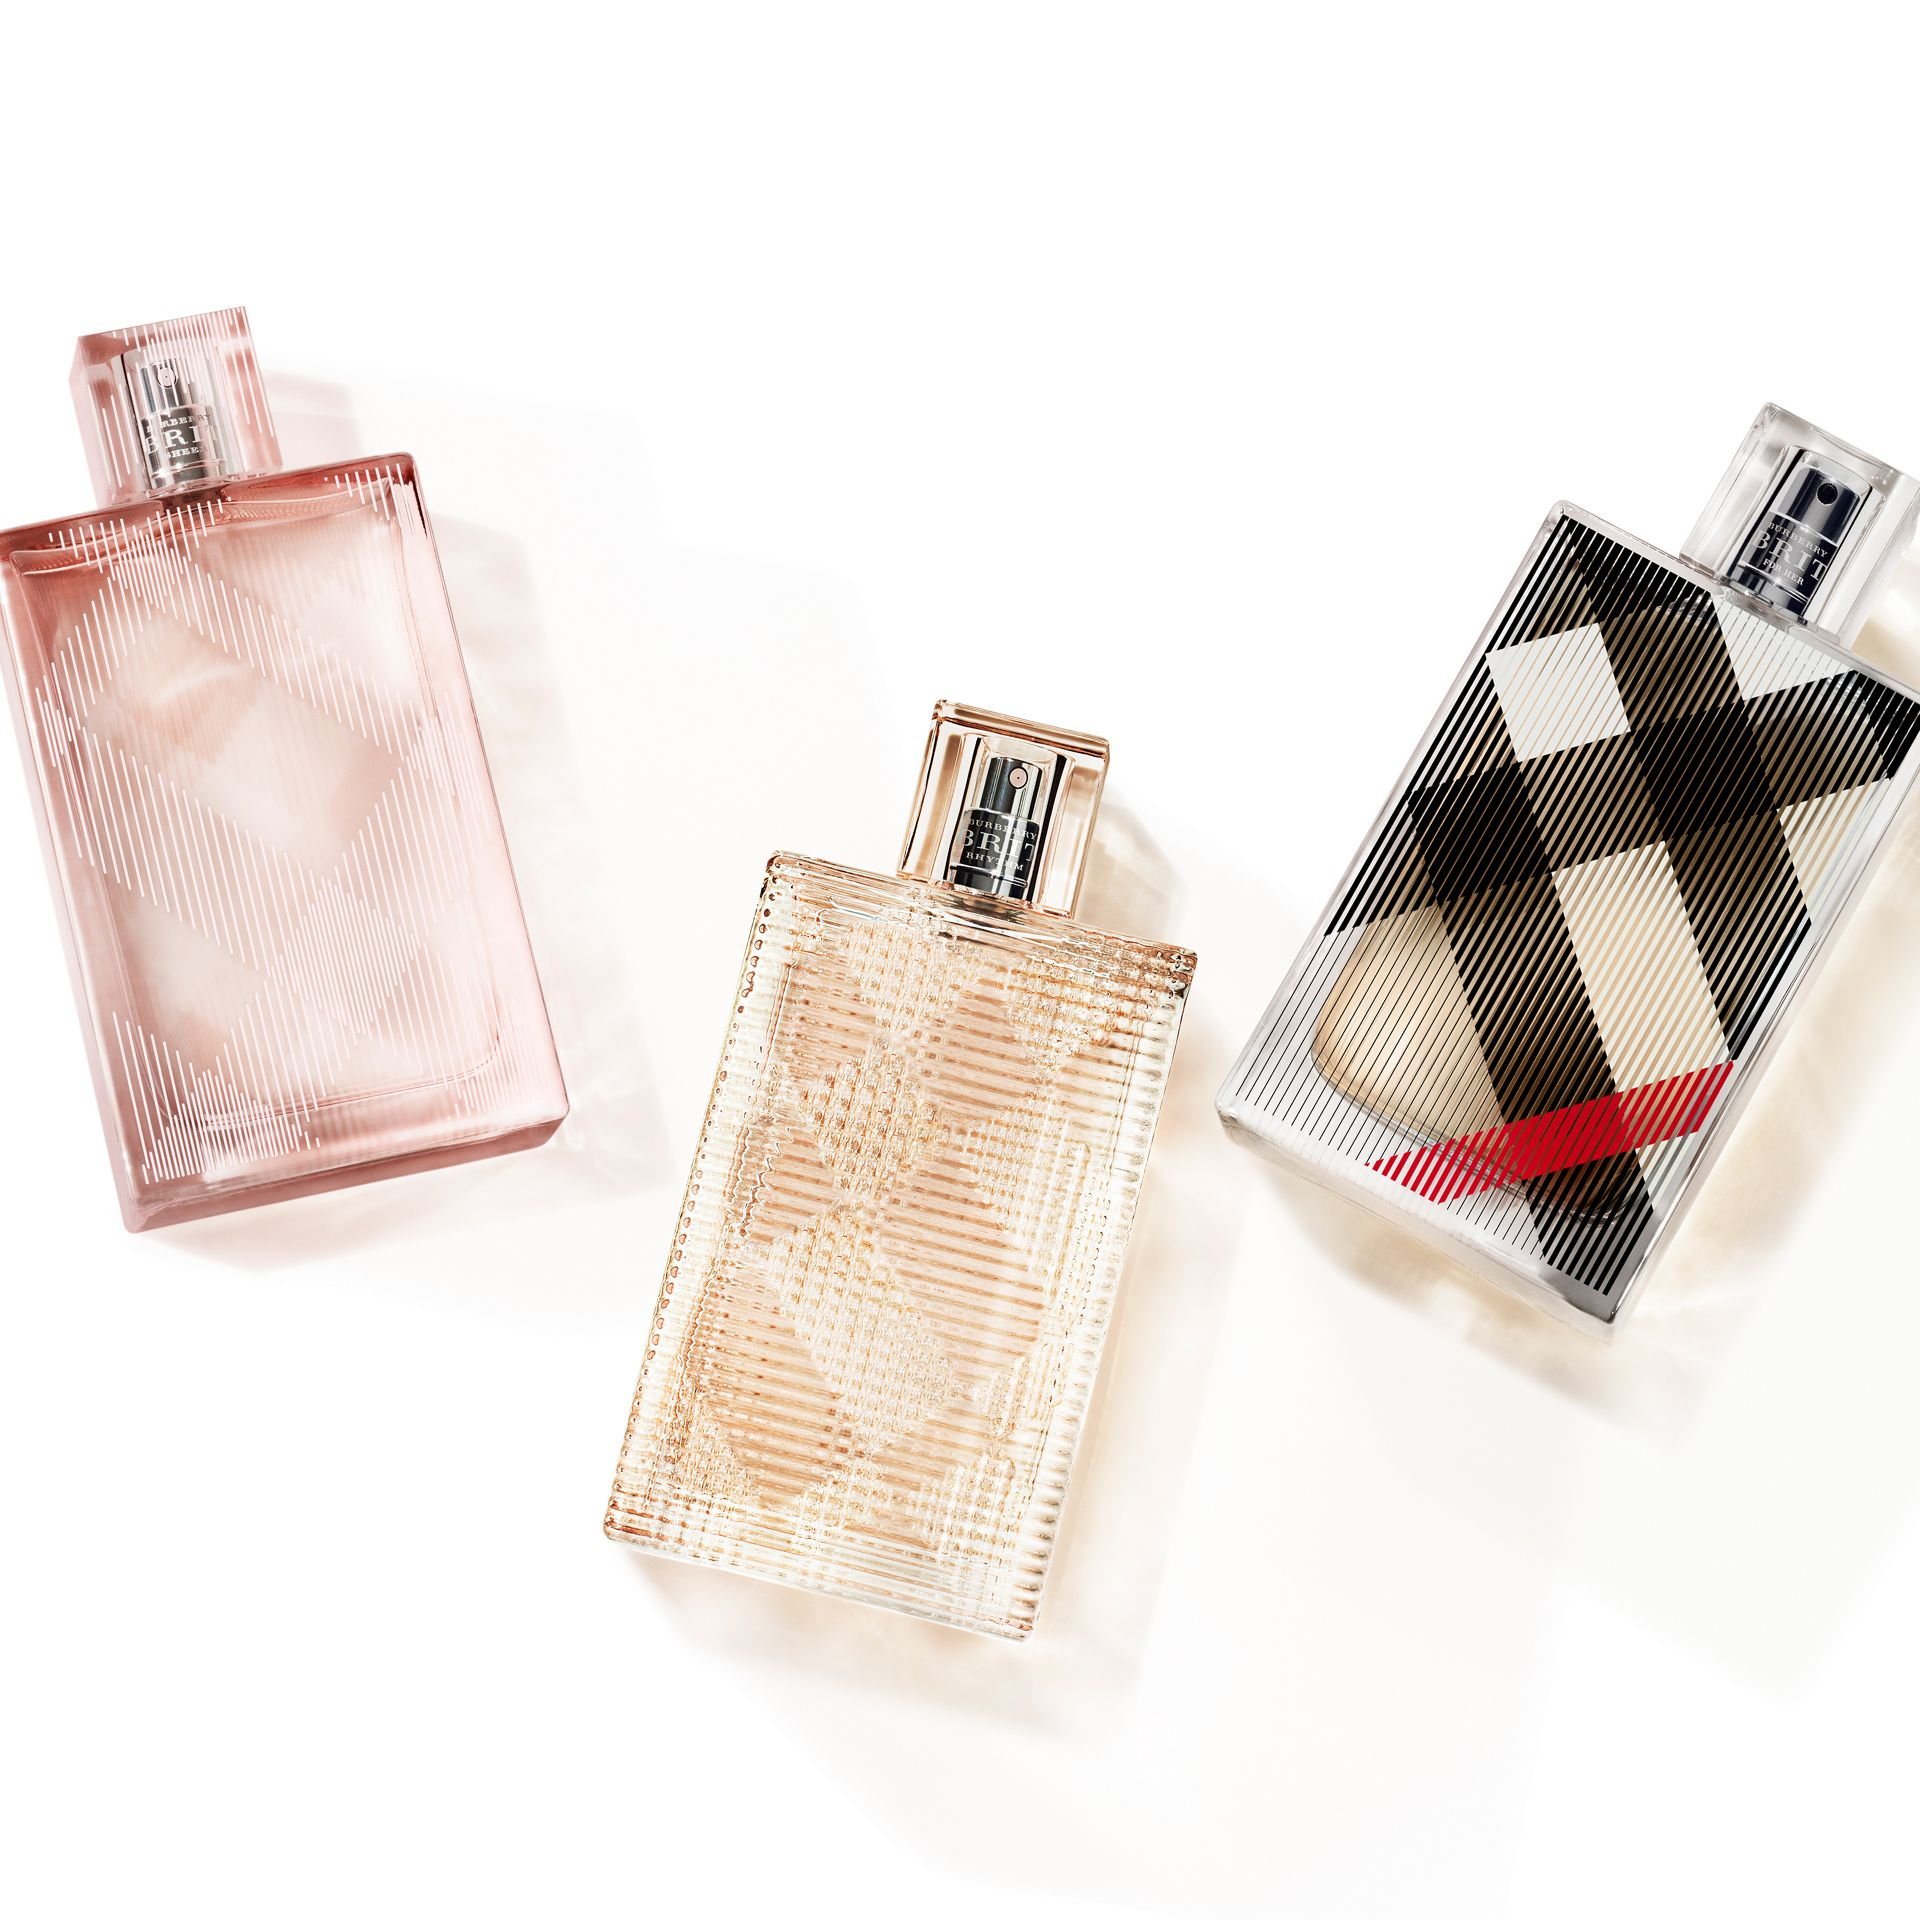 Burberry Brit For Her Eau de Toilette 100ml - gallery image 4